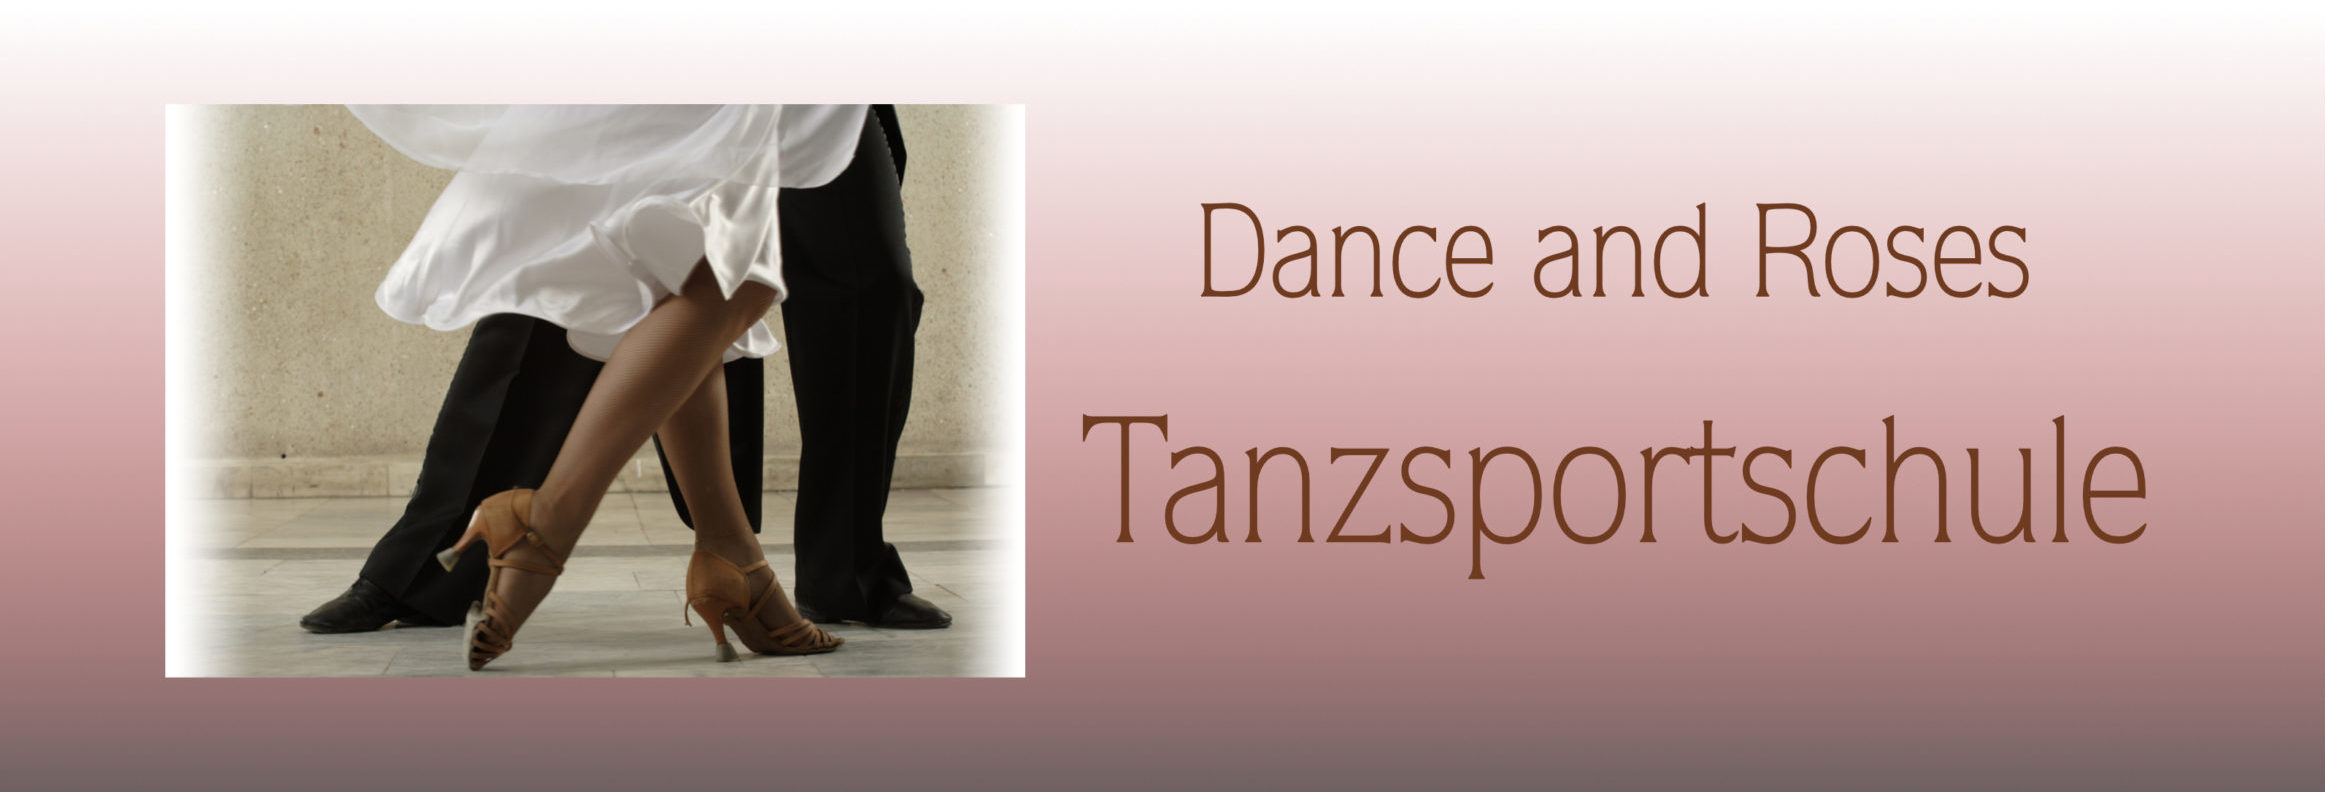 Dance and Roses Tanzsportschule